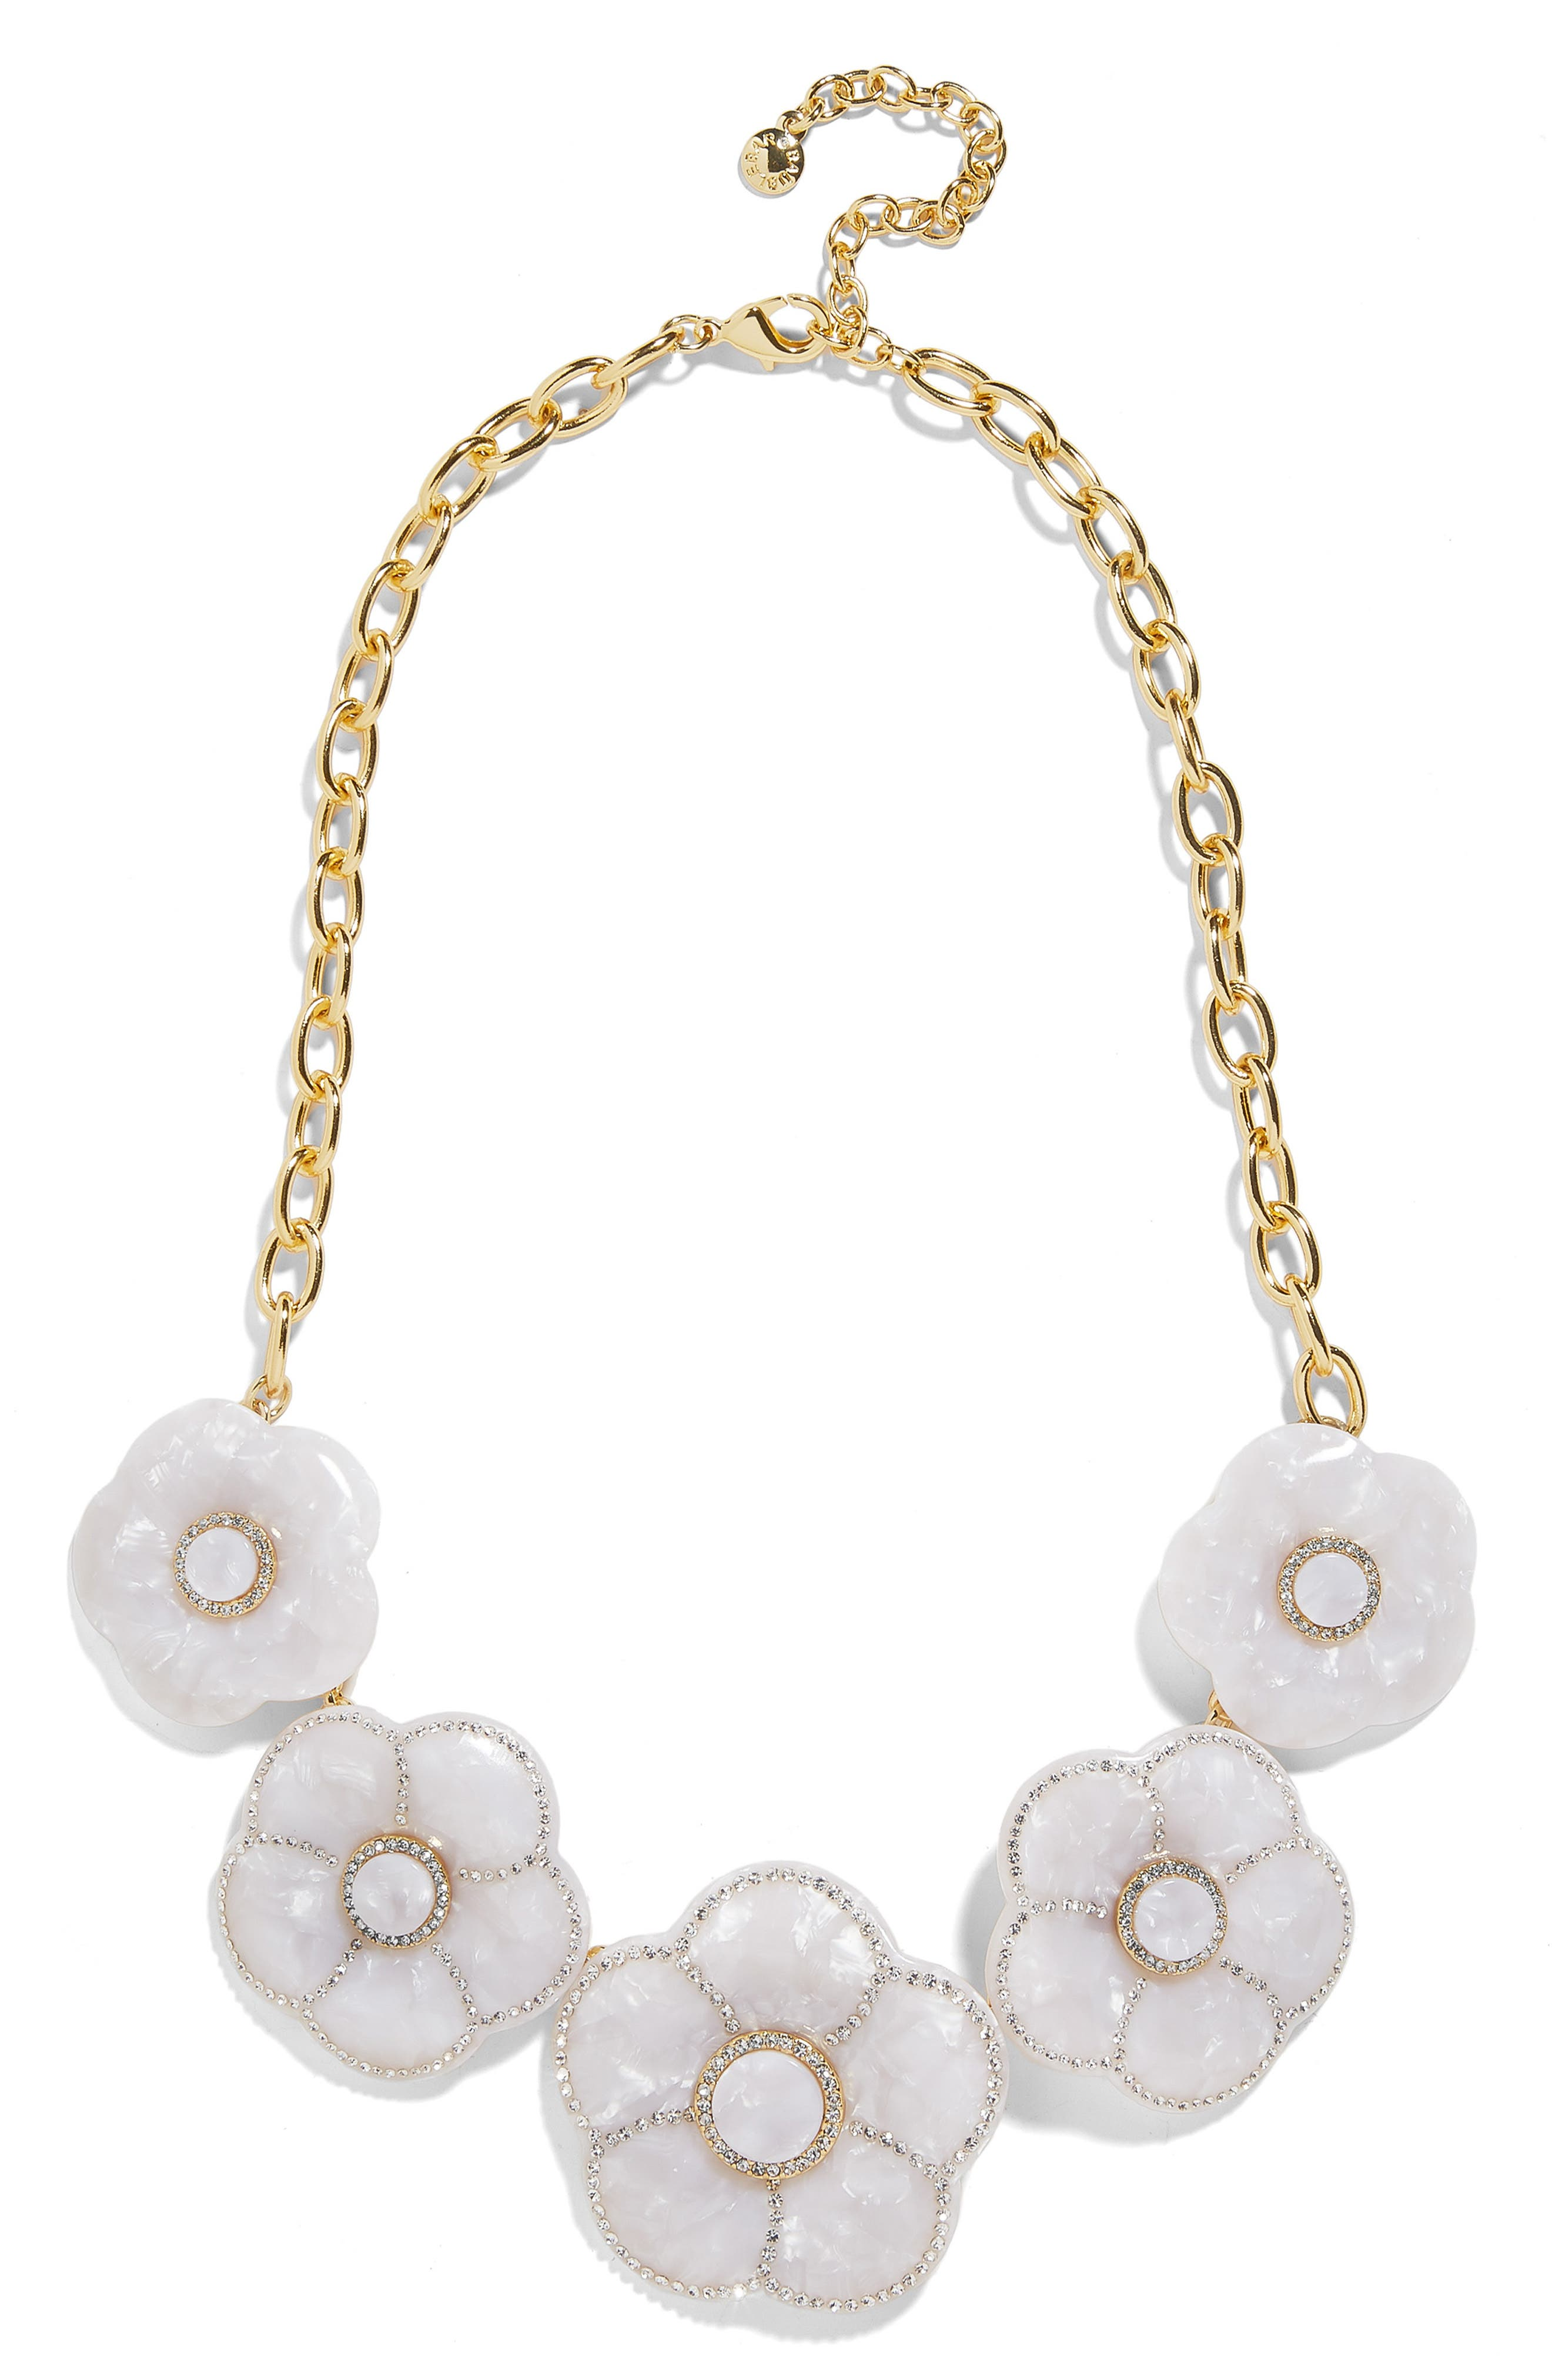 BAUBLEBAR, Madelaina Resin Flower Necklace, Main thumbnail 1, color, WHITE